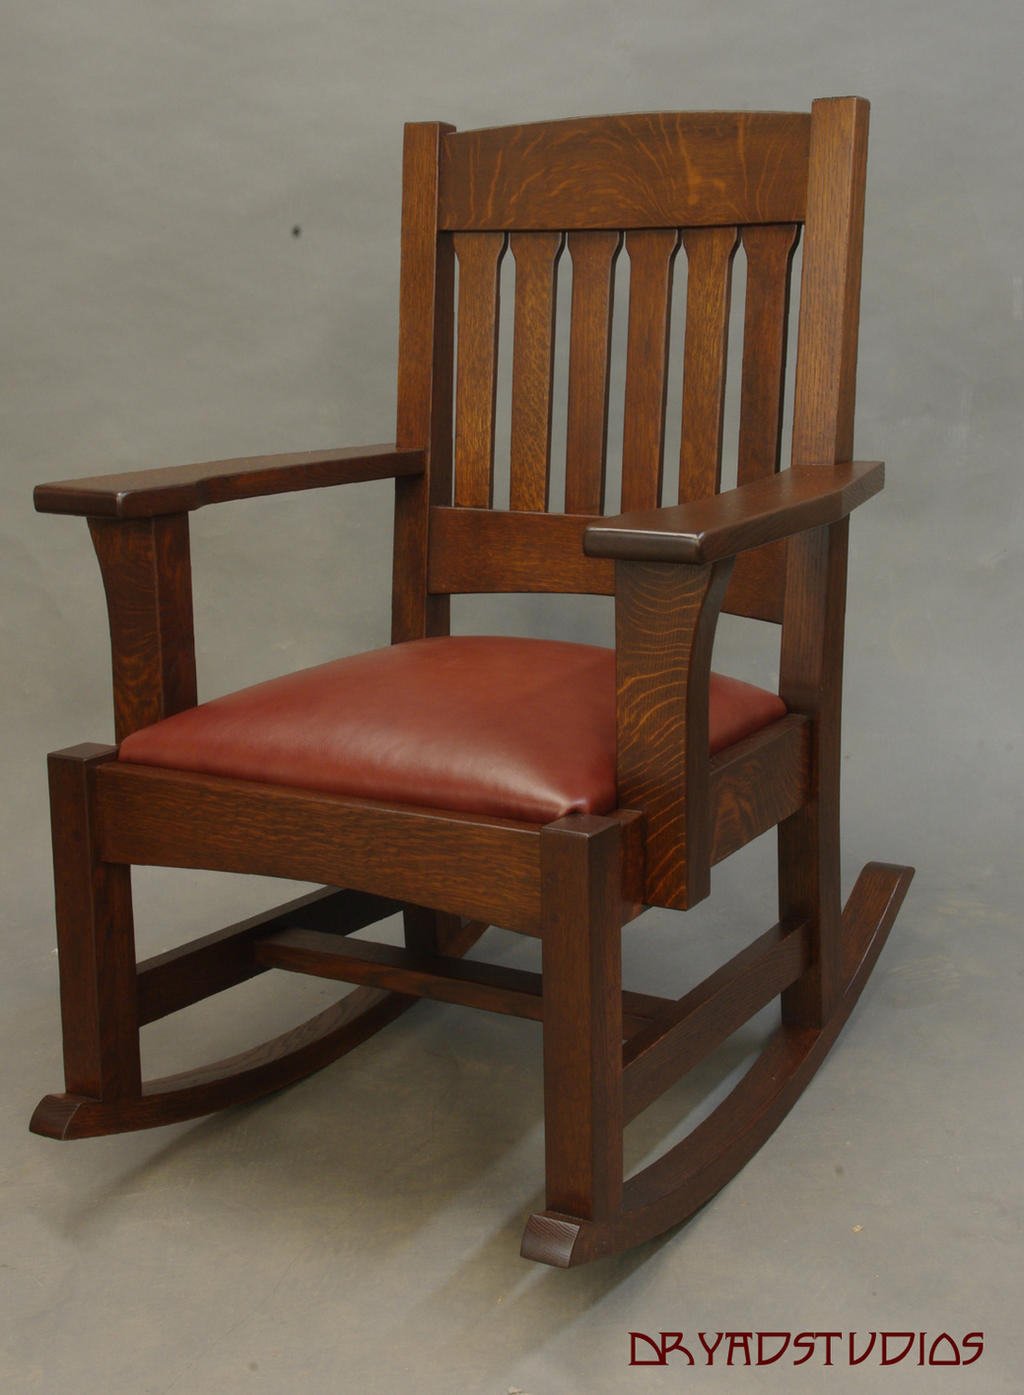 Mission Rocking Chair By DryadStudios Mission Rocking Chair By DryadStudios